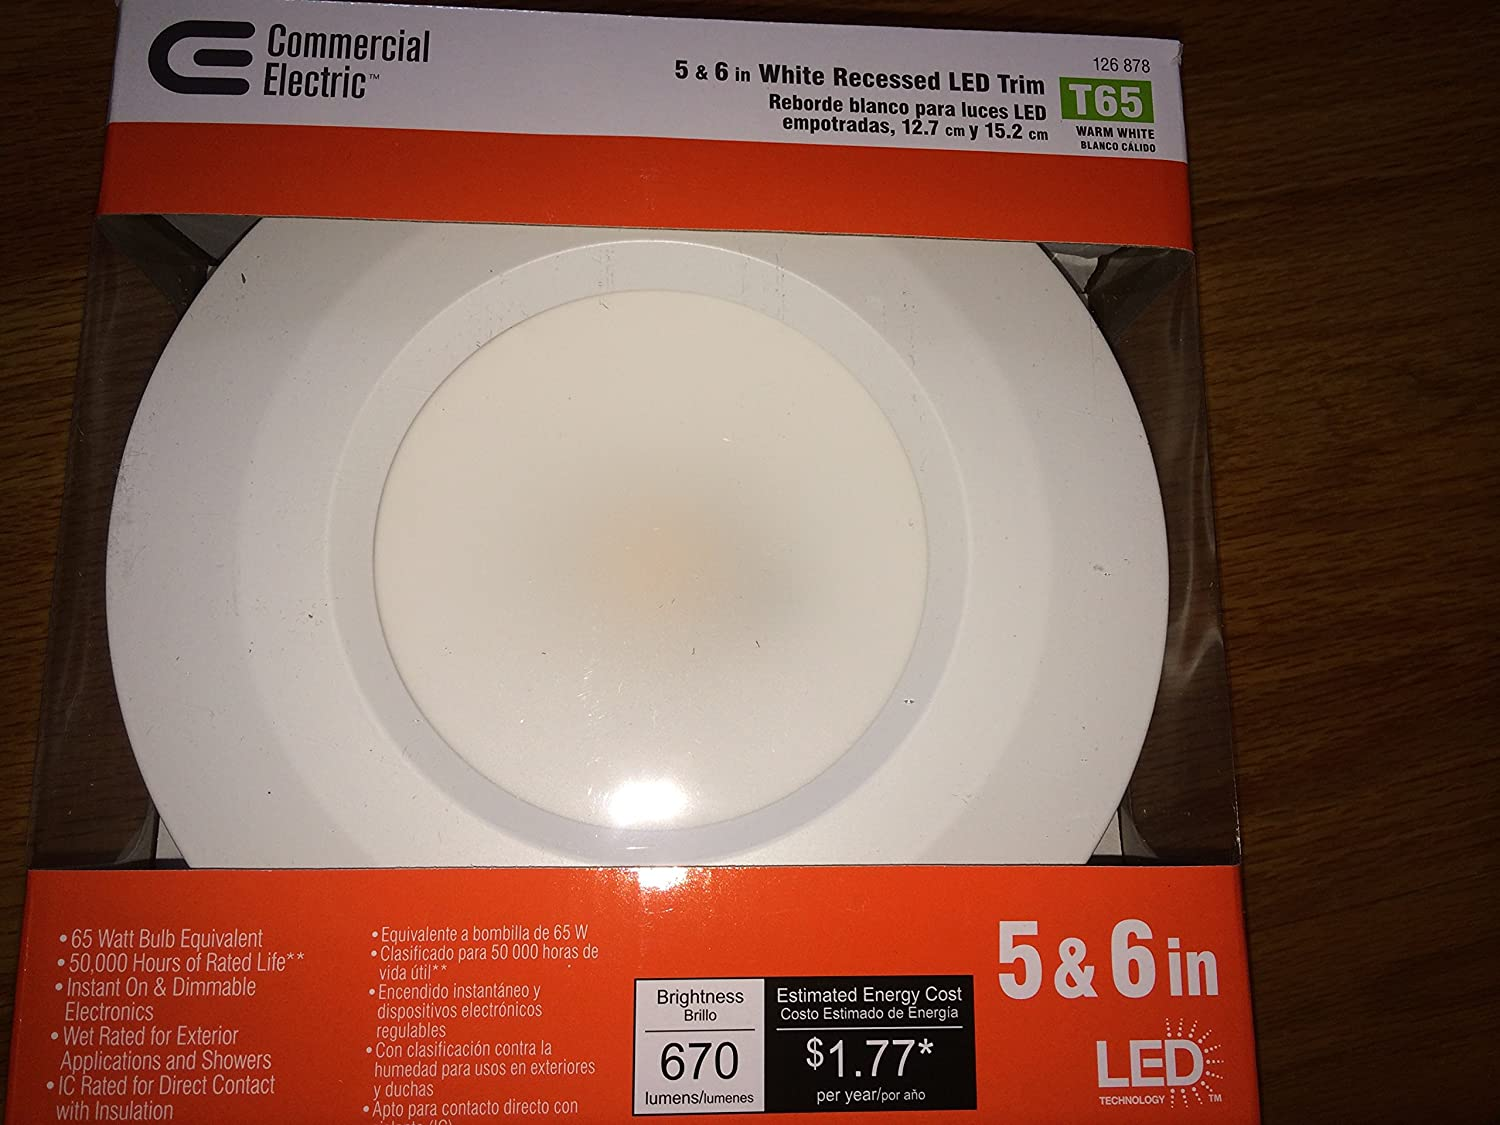 New commercial electric t65 model cer6730awh27 5 in and 6 in new commercial electric t65 model cer6730awh27 5 in and 6 in white recessed led trim 90 cri 2700k amazon aloadofball Image collections